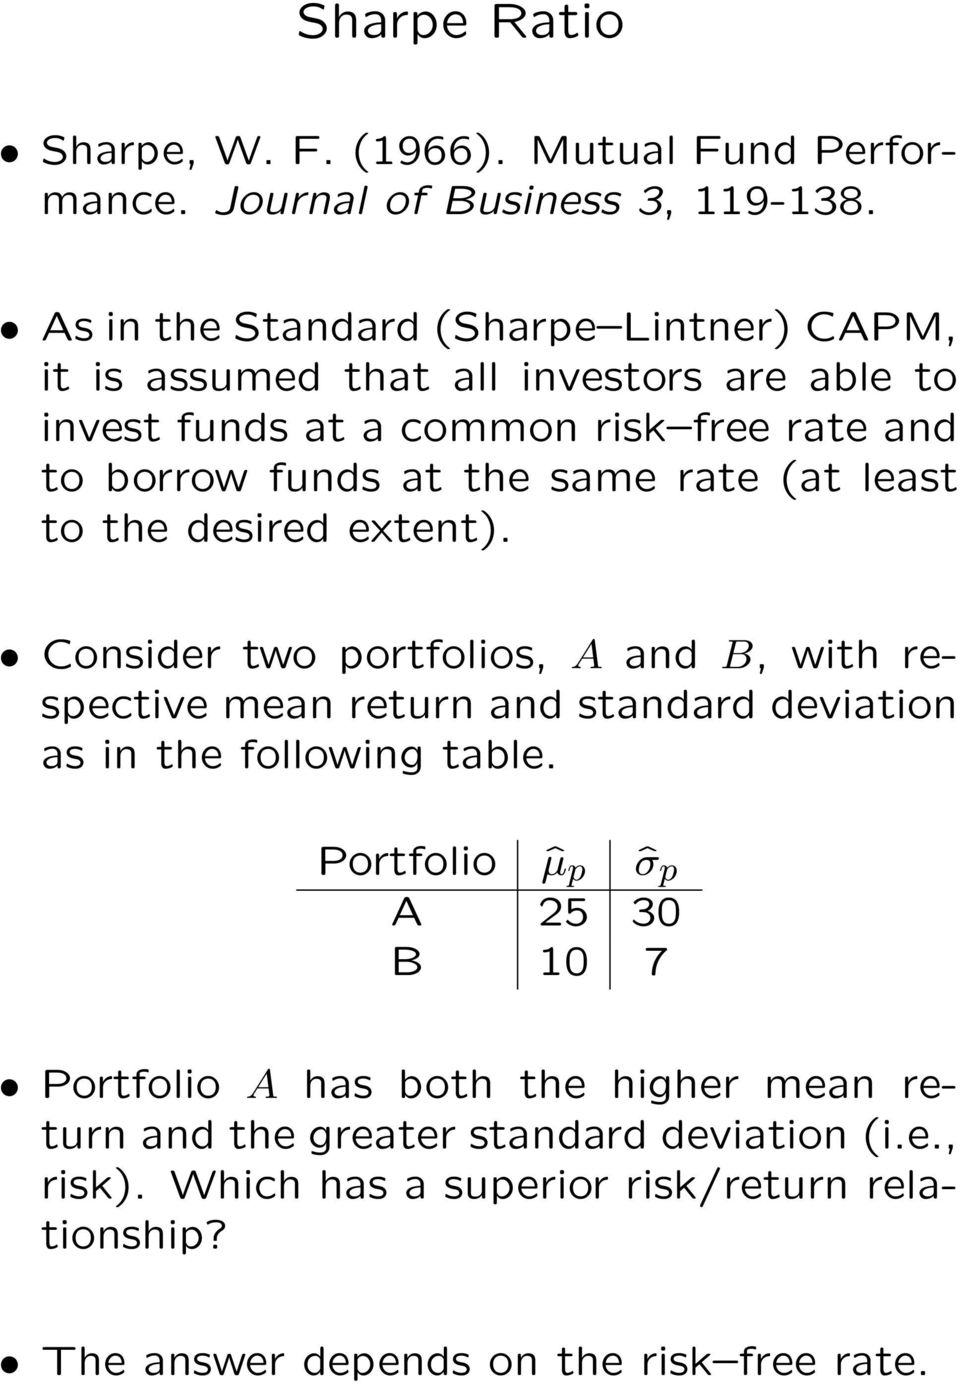 same rate (at least to the desired extent). Consider two portfolios, A and B, with respective mean return and standard deviation as in the following table.